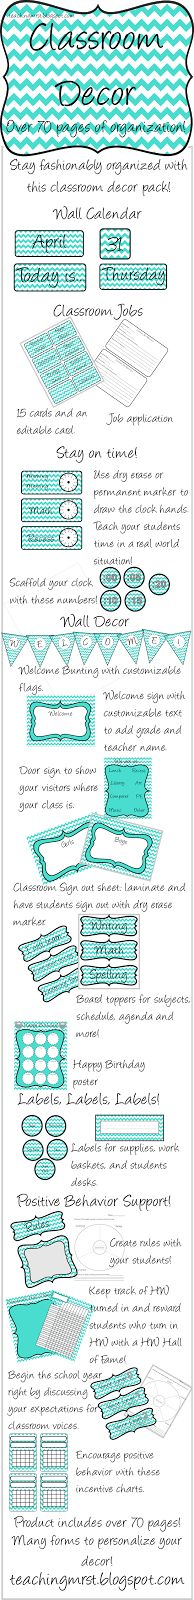 Over 70 pages of classroom decor to help you stay organized this school year. Adorable teal chevron design. $